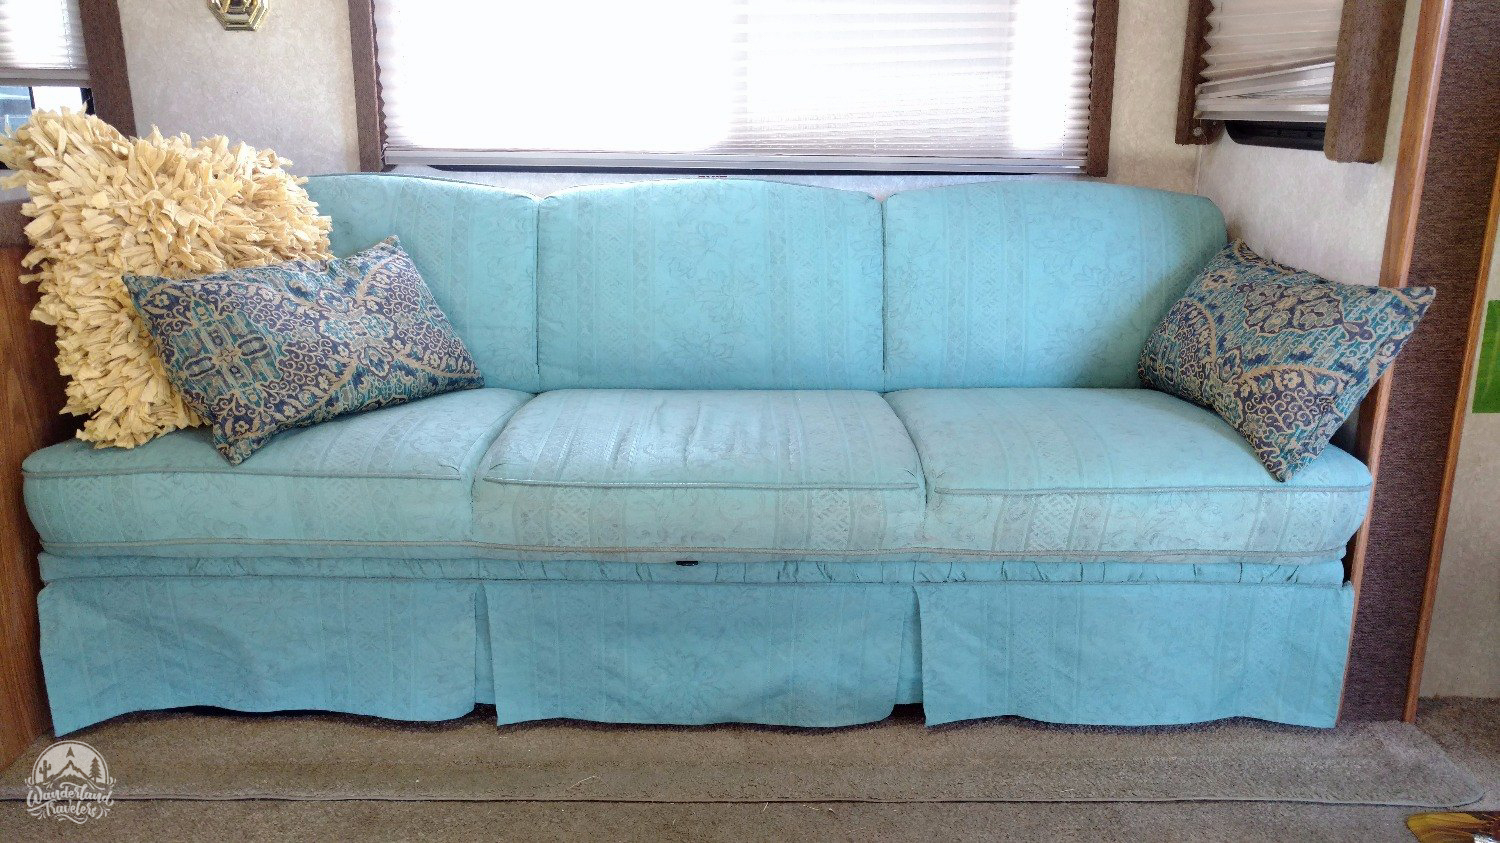 Painting Our RV Couch with Chalk Paint